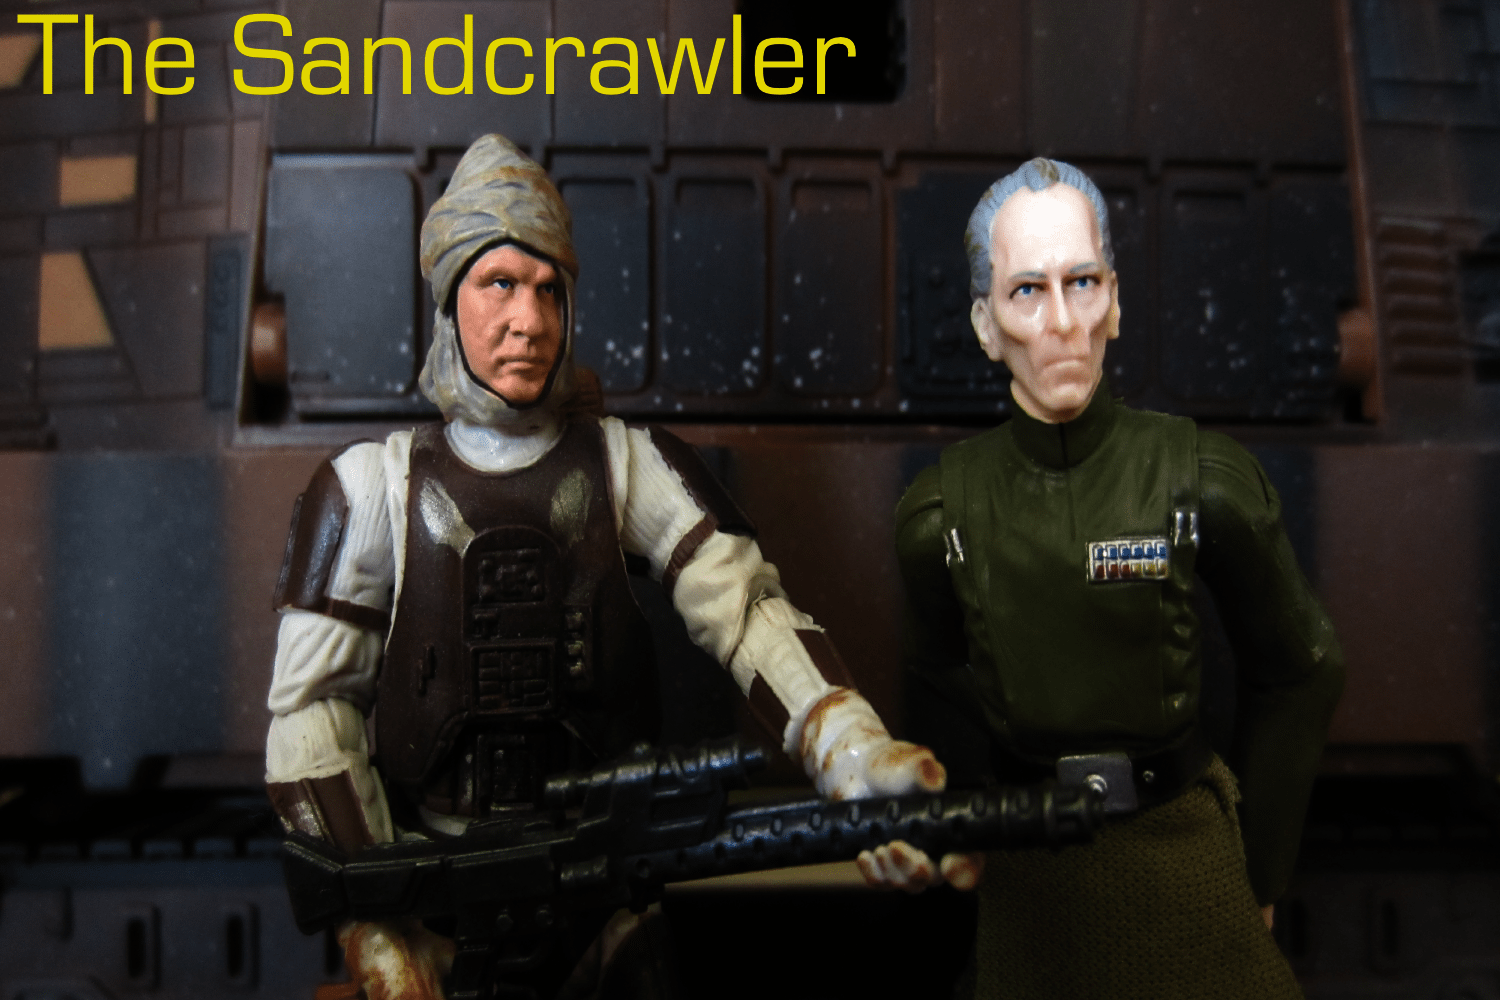 Sandcrawler 1 featured Patriots